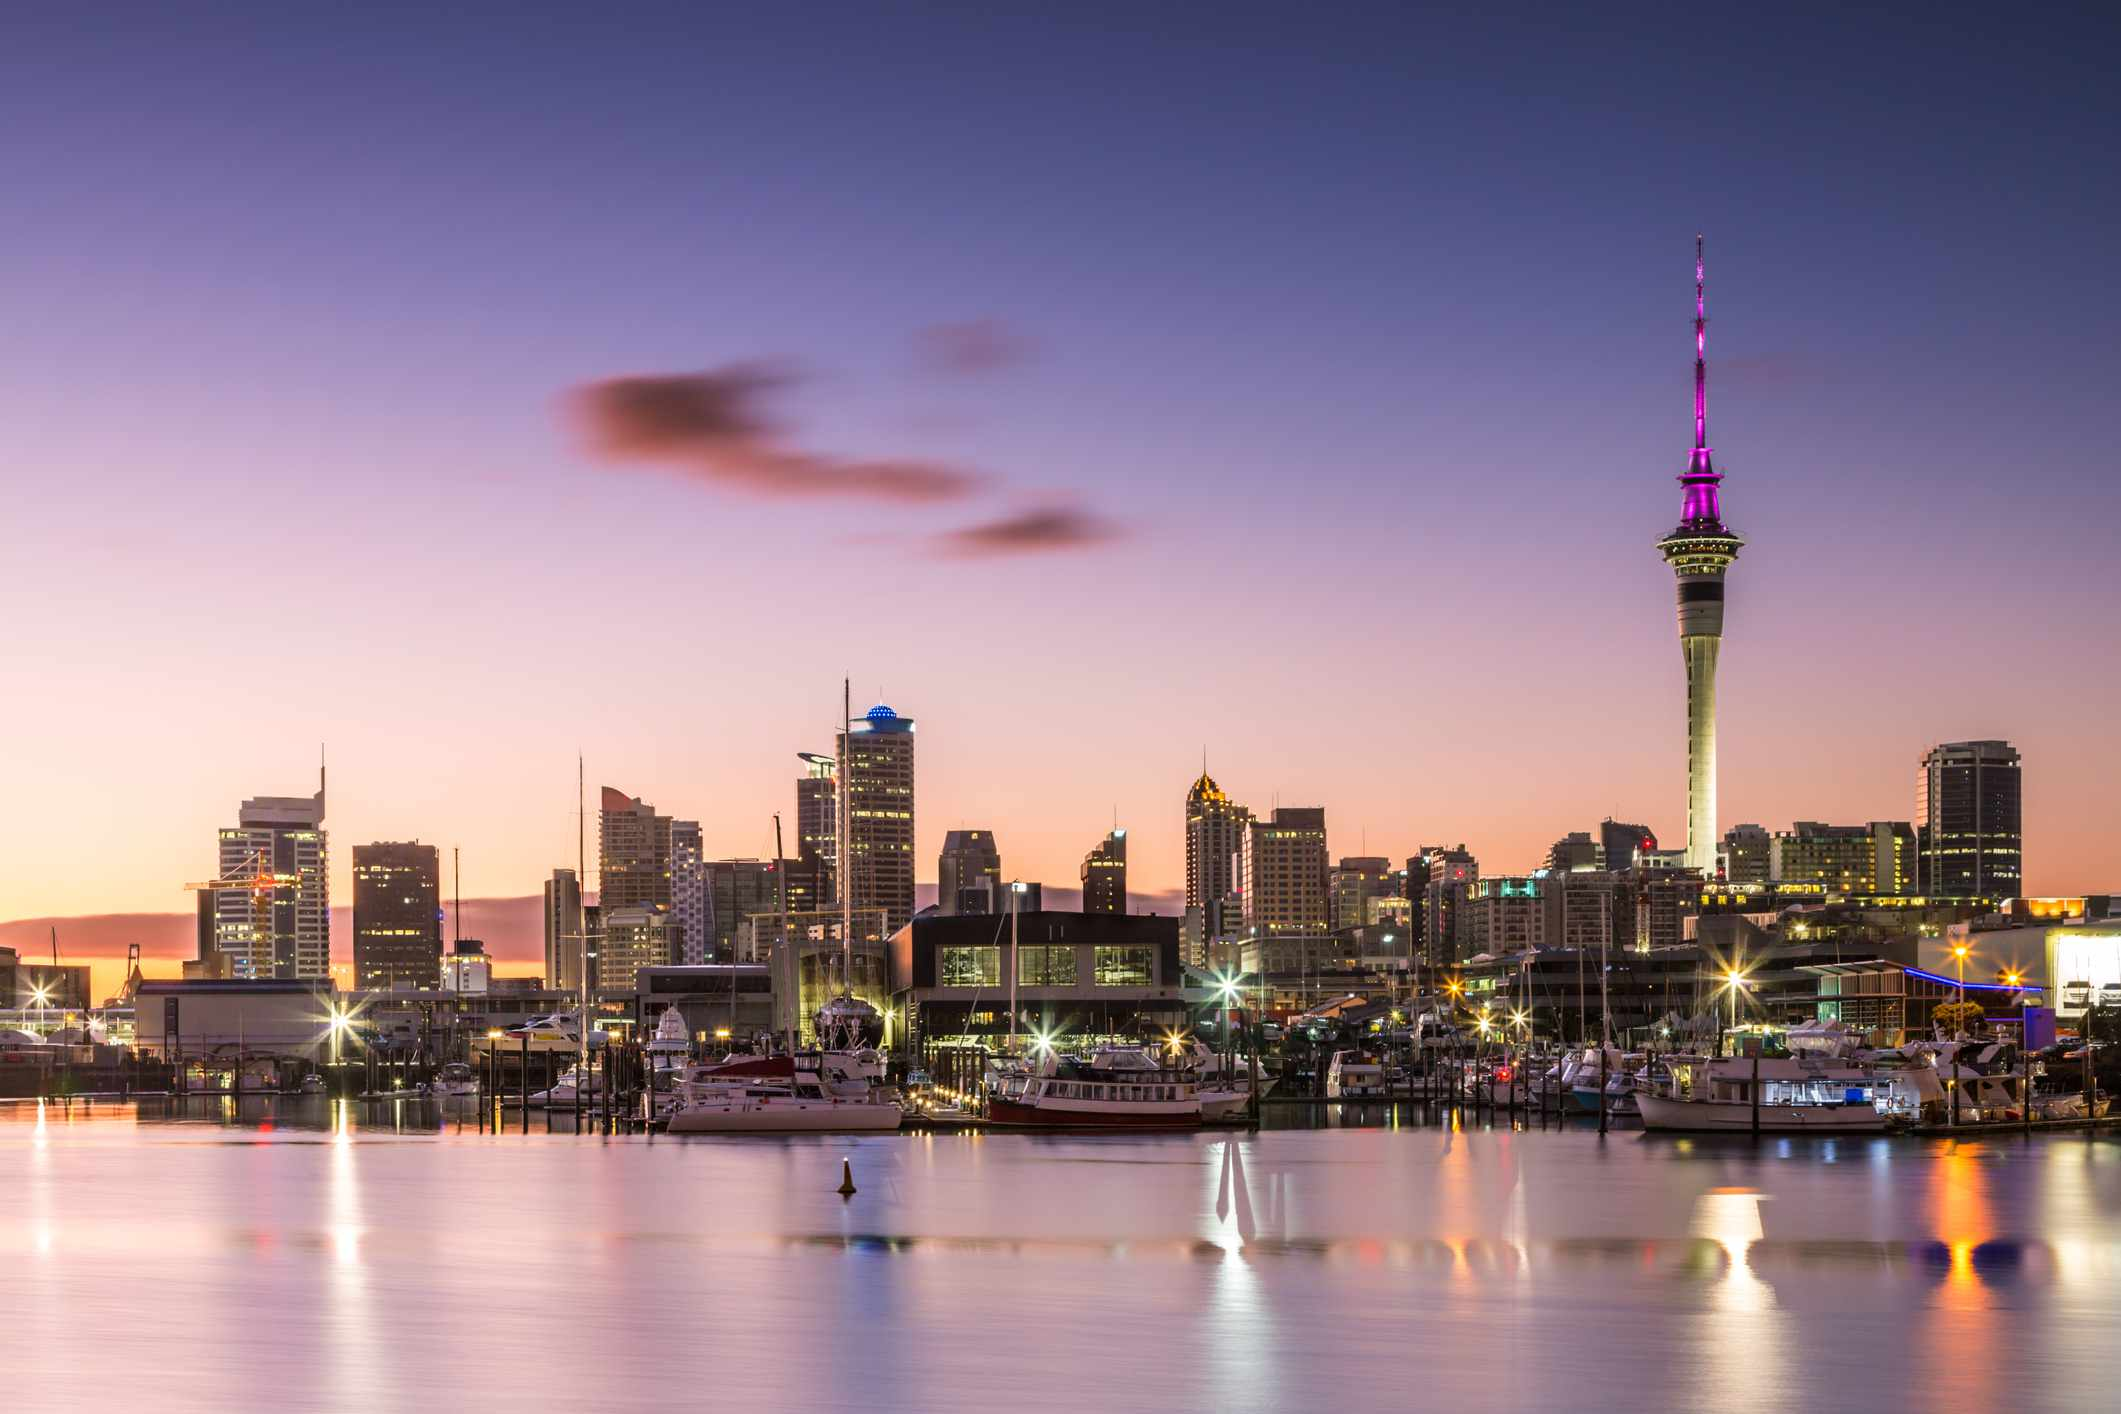 Downtown Auckland, New Zealand in the early morning